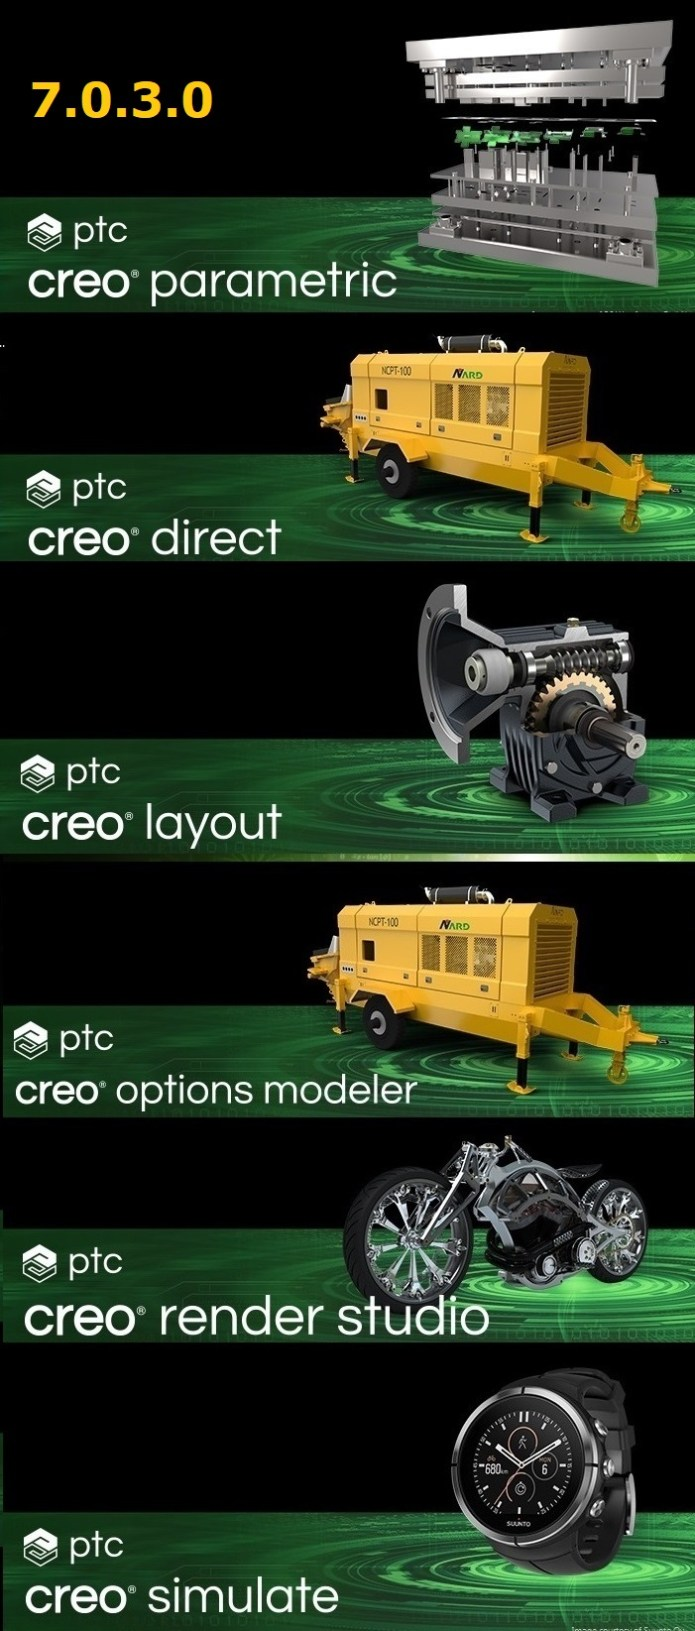 PTC Creo 7.0.3.0 x64 full license